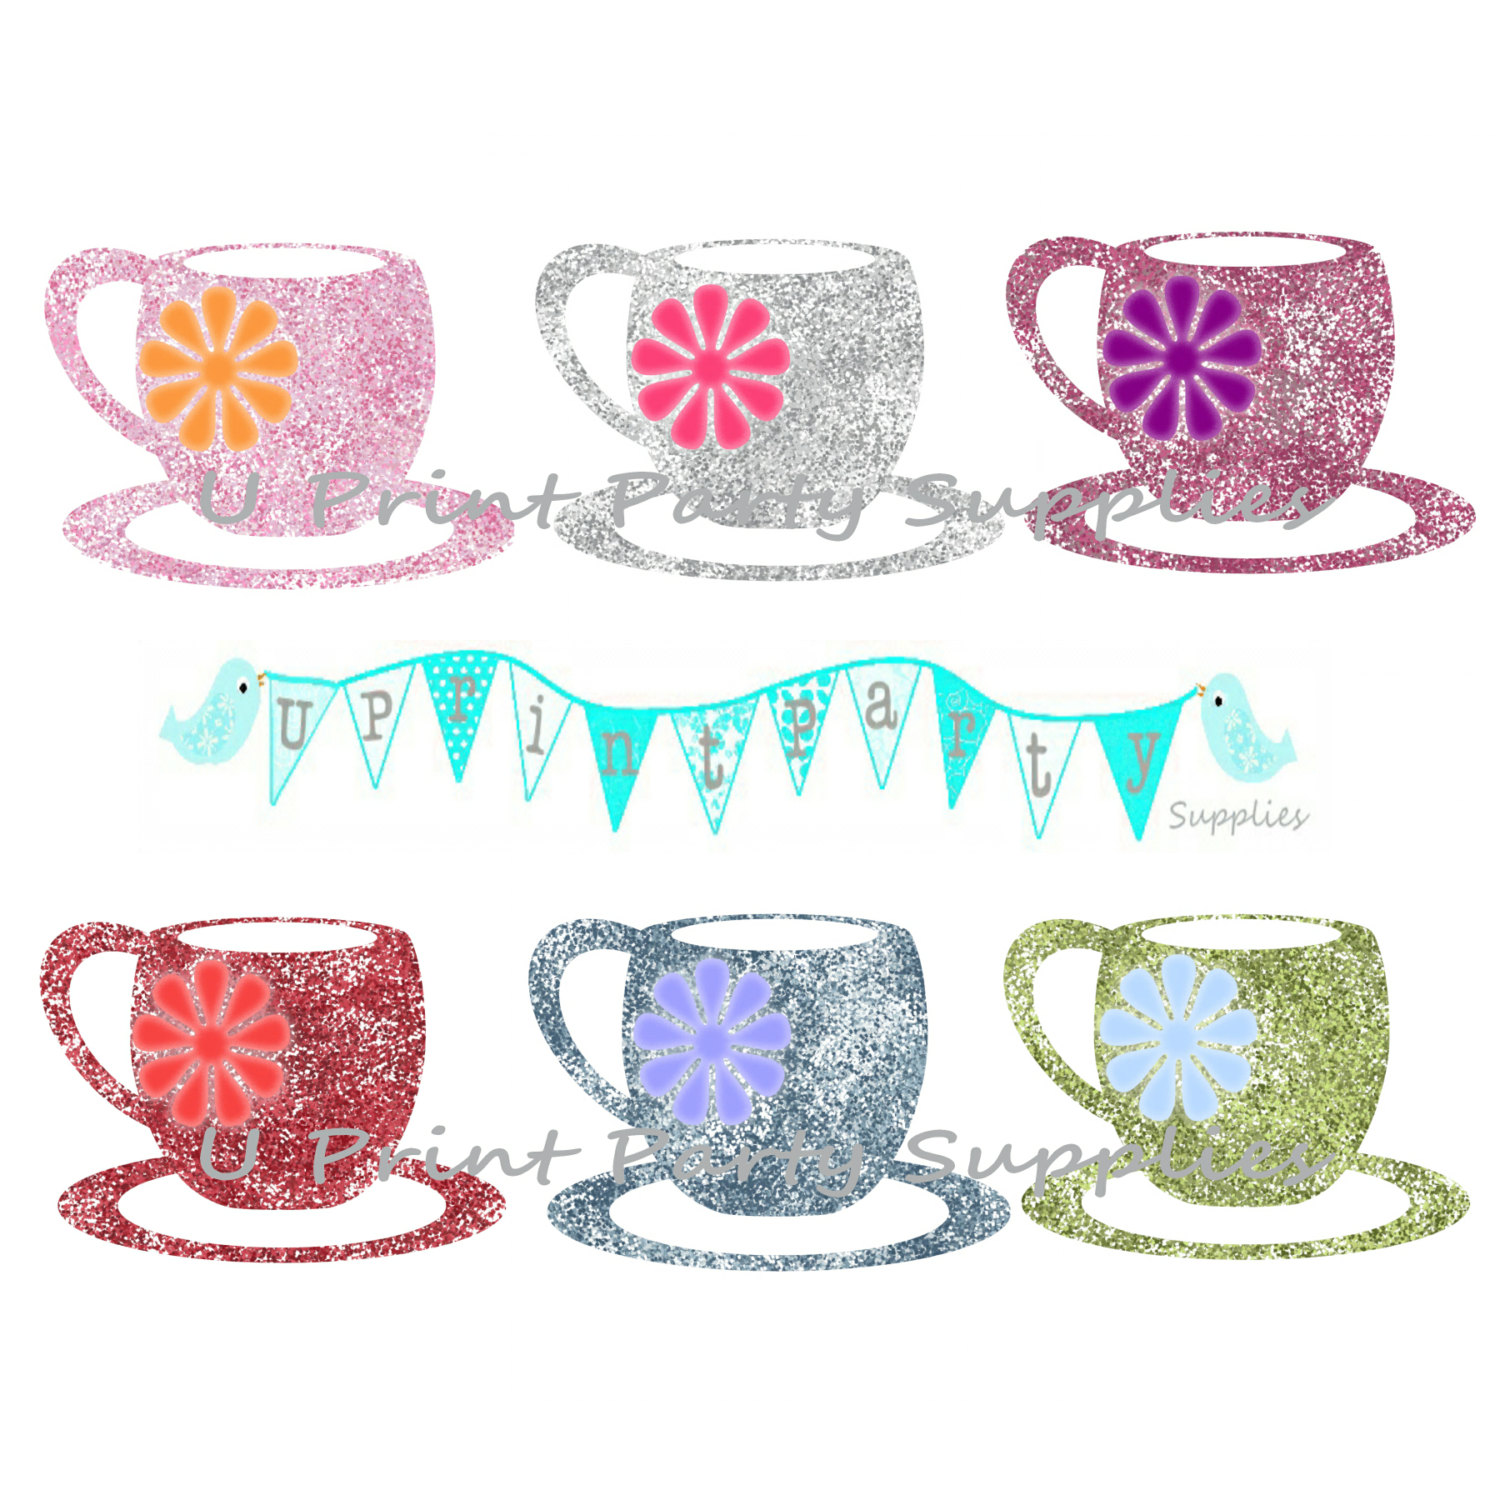 Free Tea Party Cliparts, Download Free Clip Art, Free Clip.